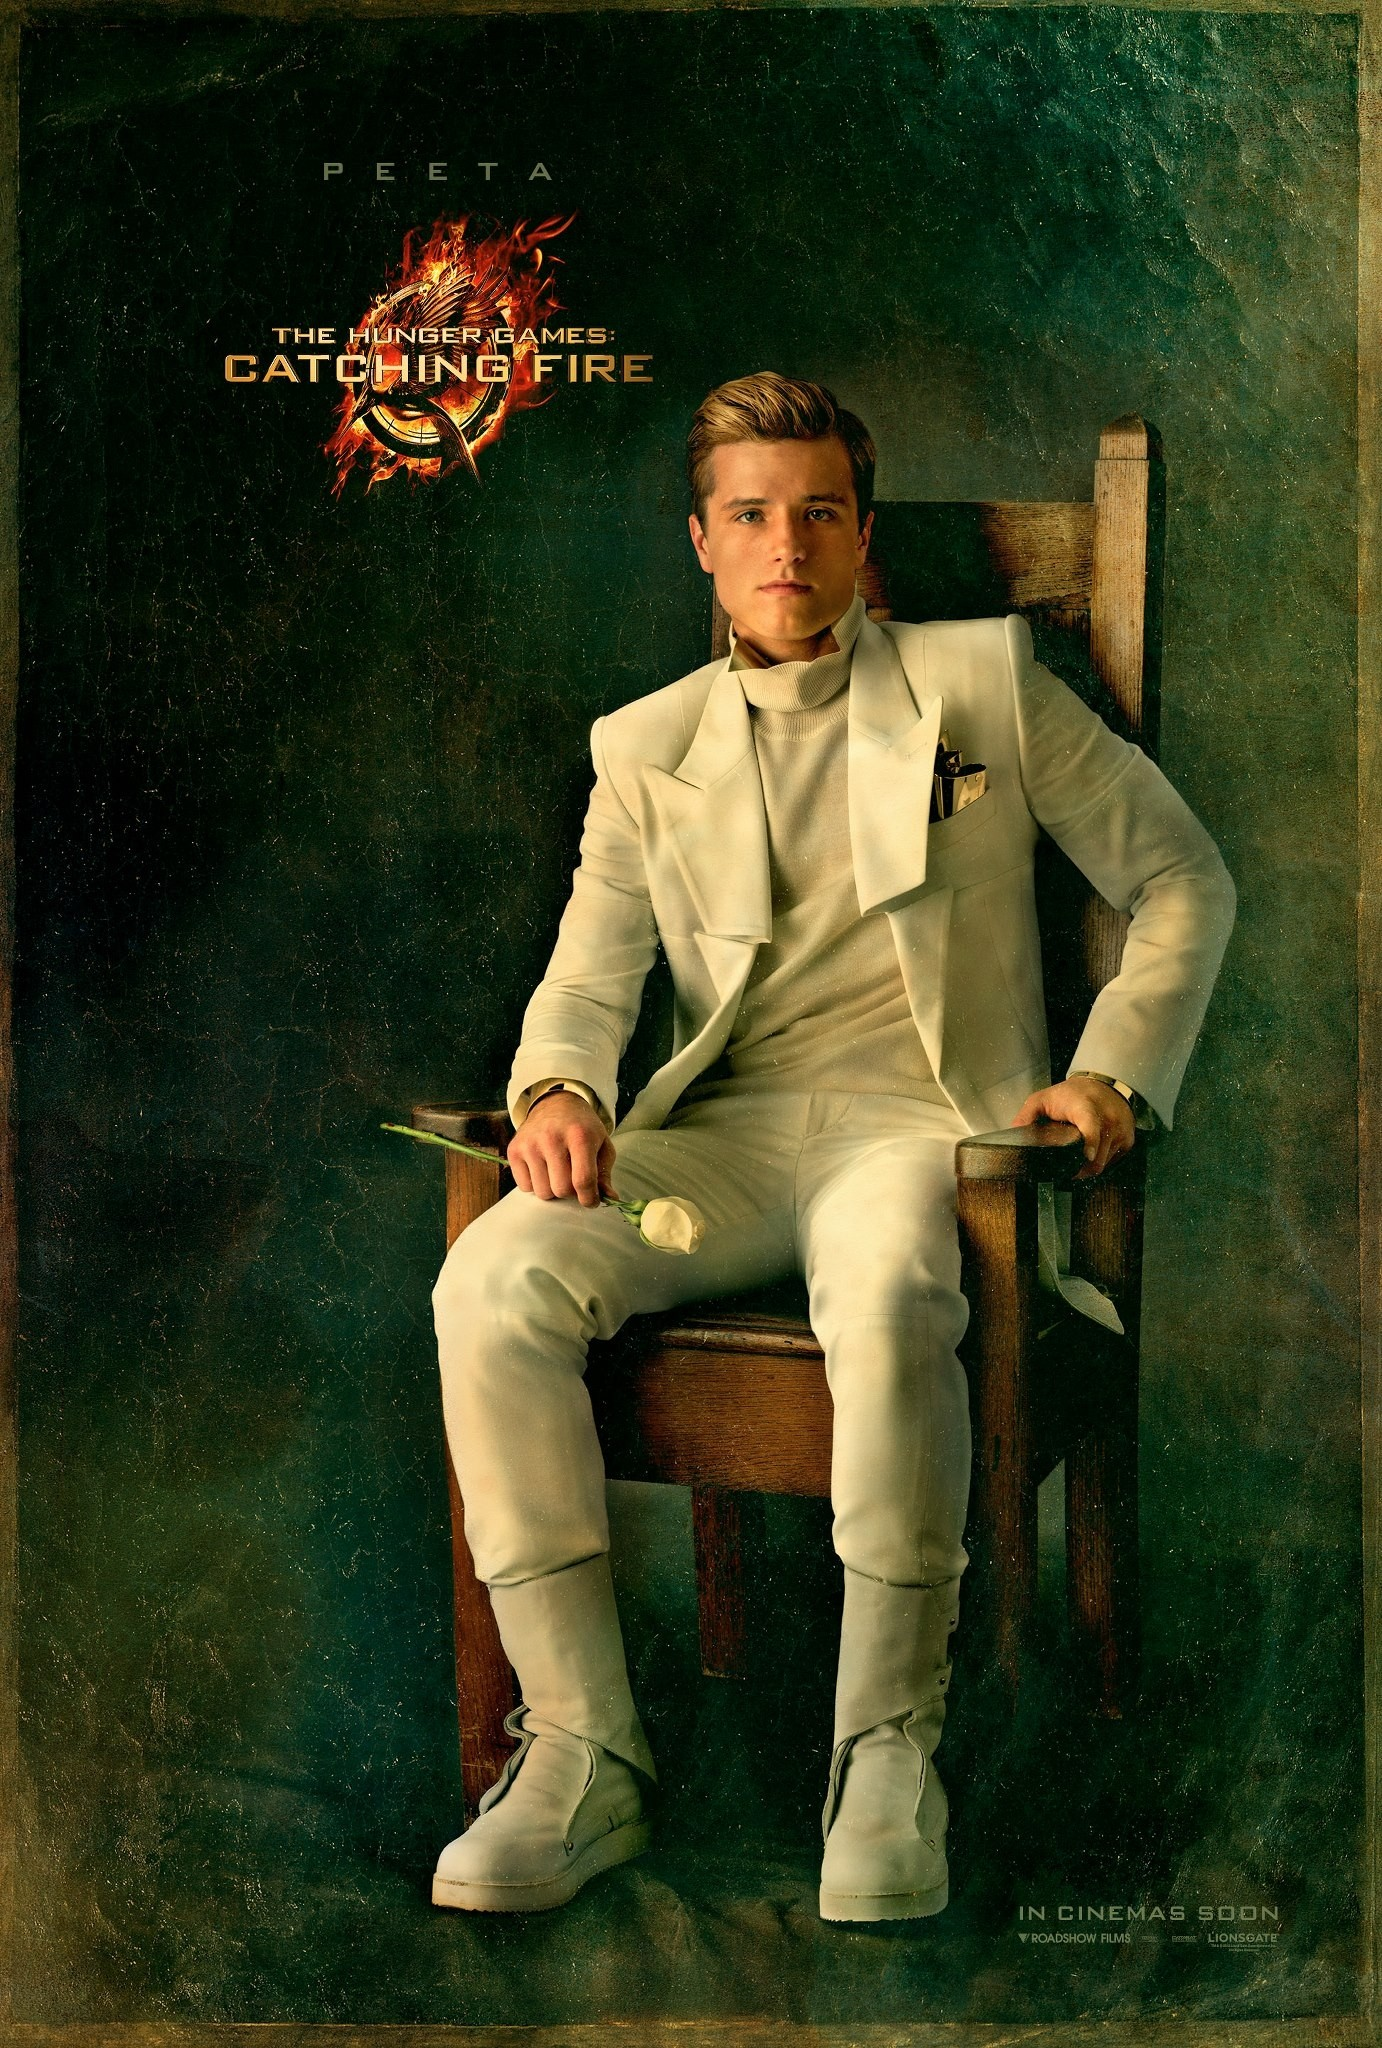 The Hunger Games Catching Fire - Poster - 011 - Peeta